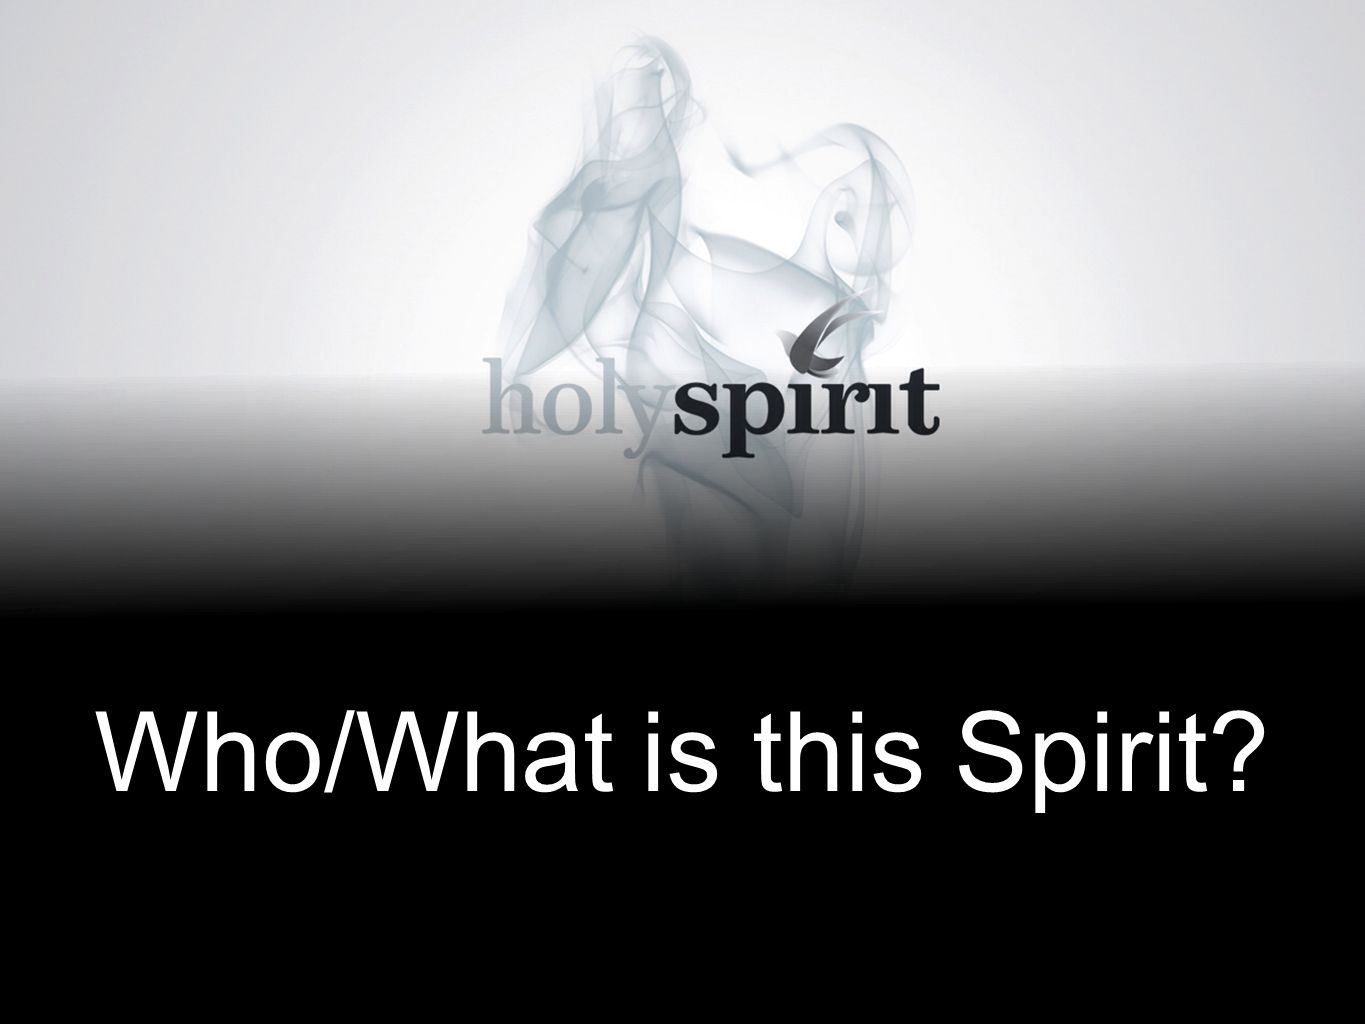 Who/What is this Spirit